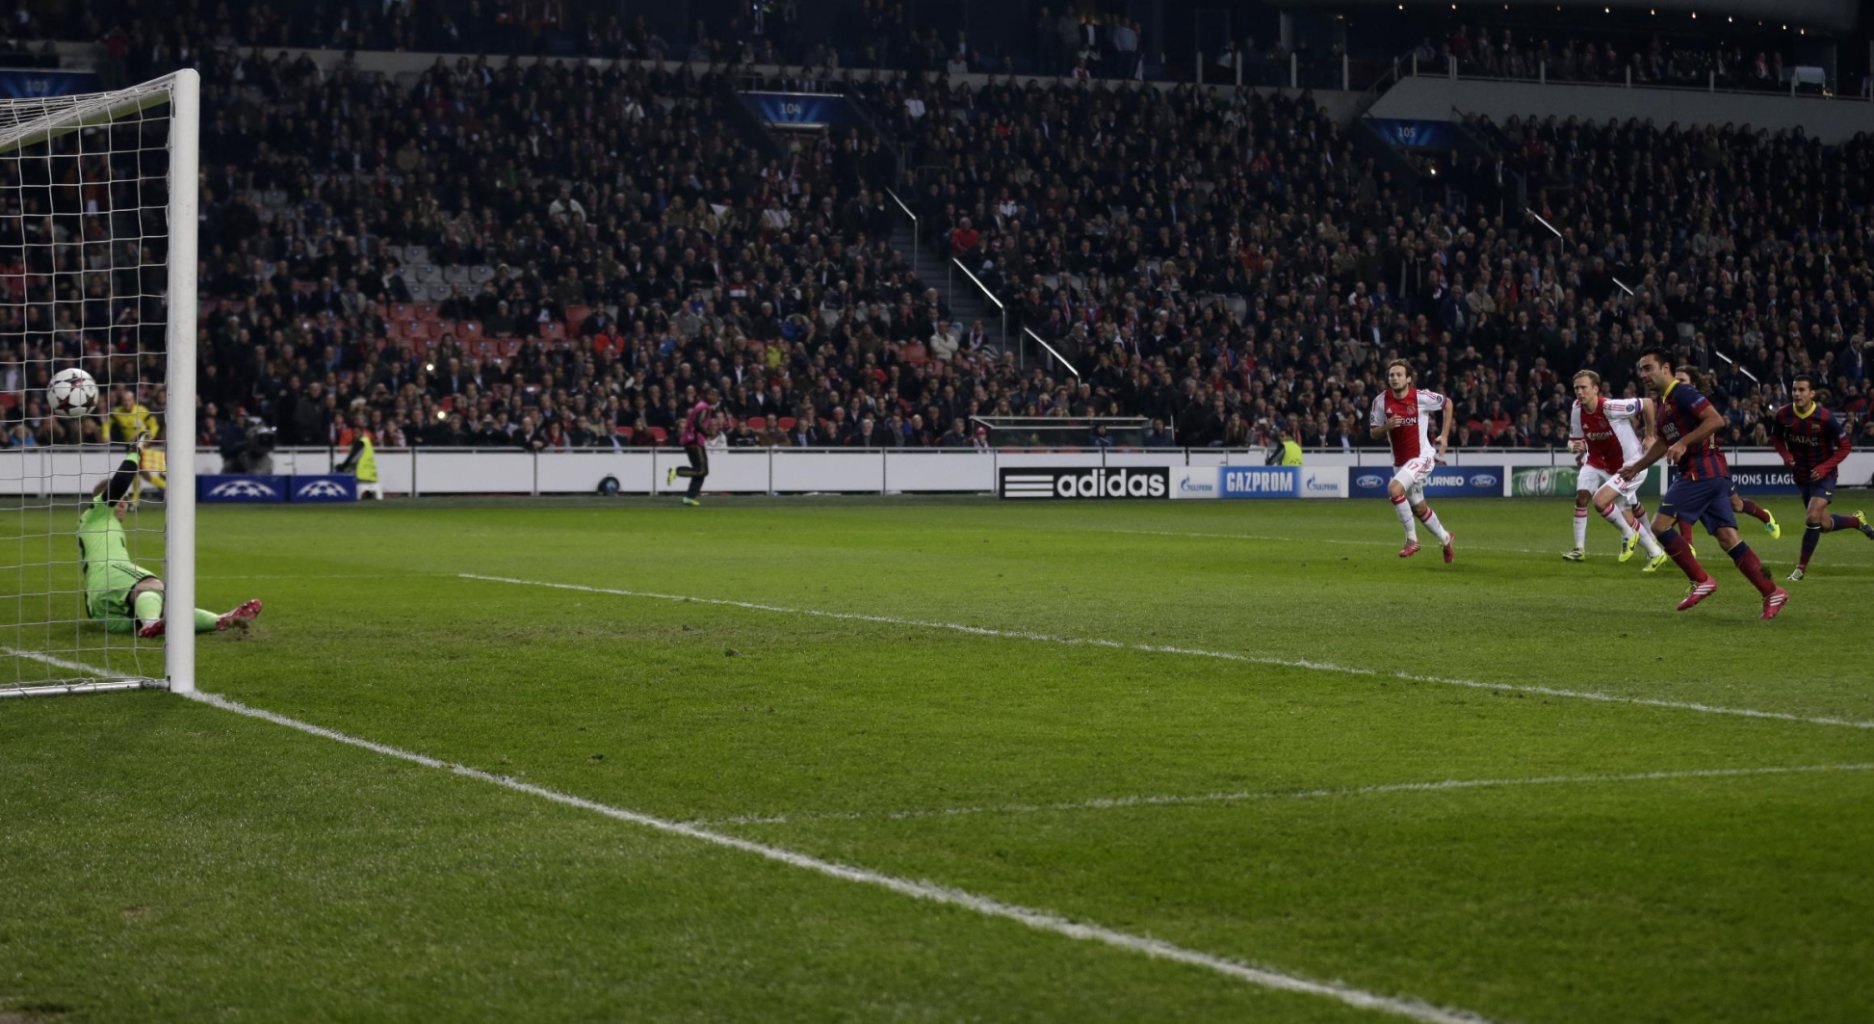 Xavi scoring for Barcelona, in the Champions League, from the penalty-kick spot